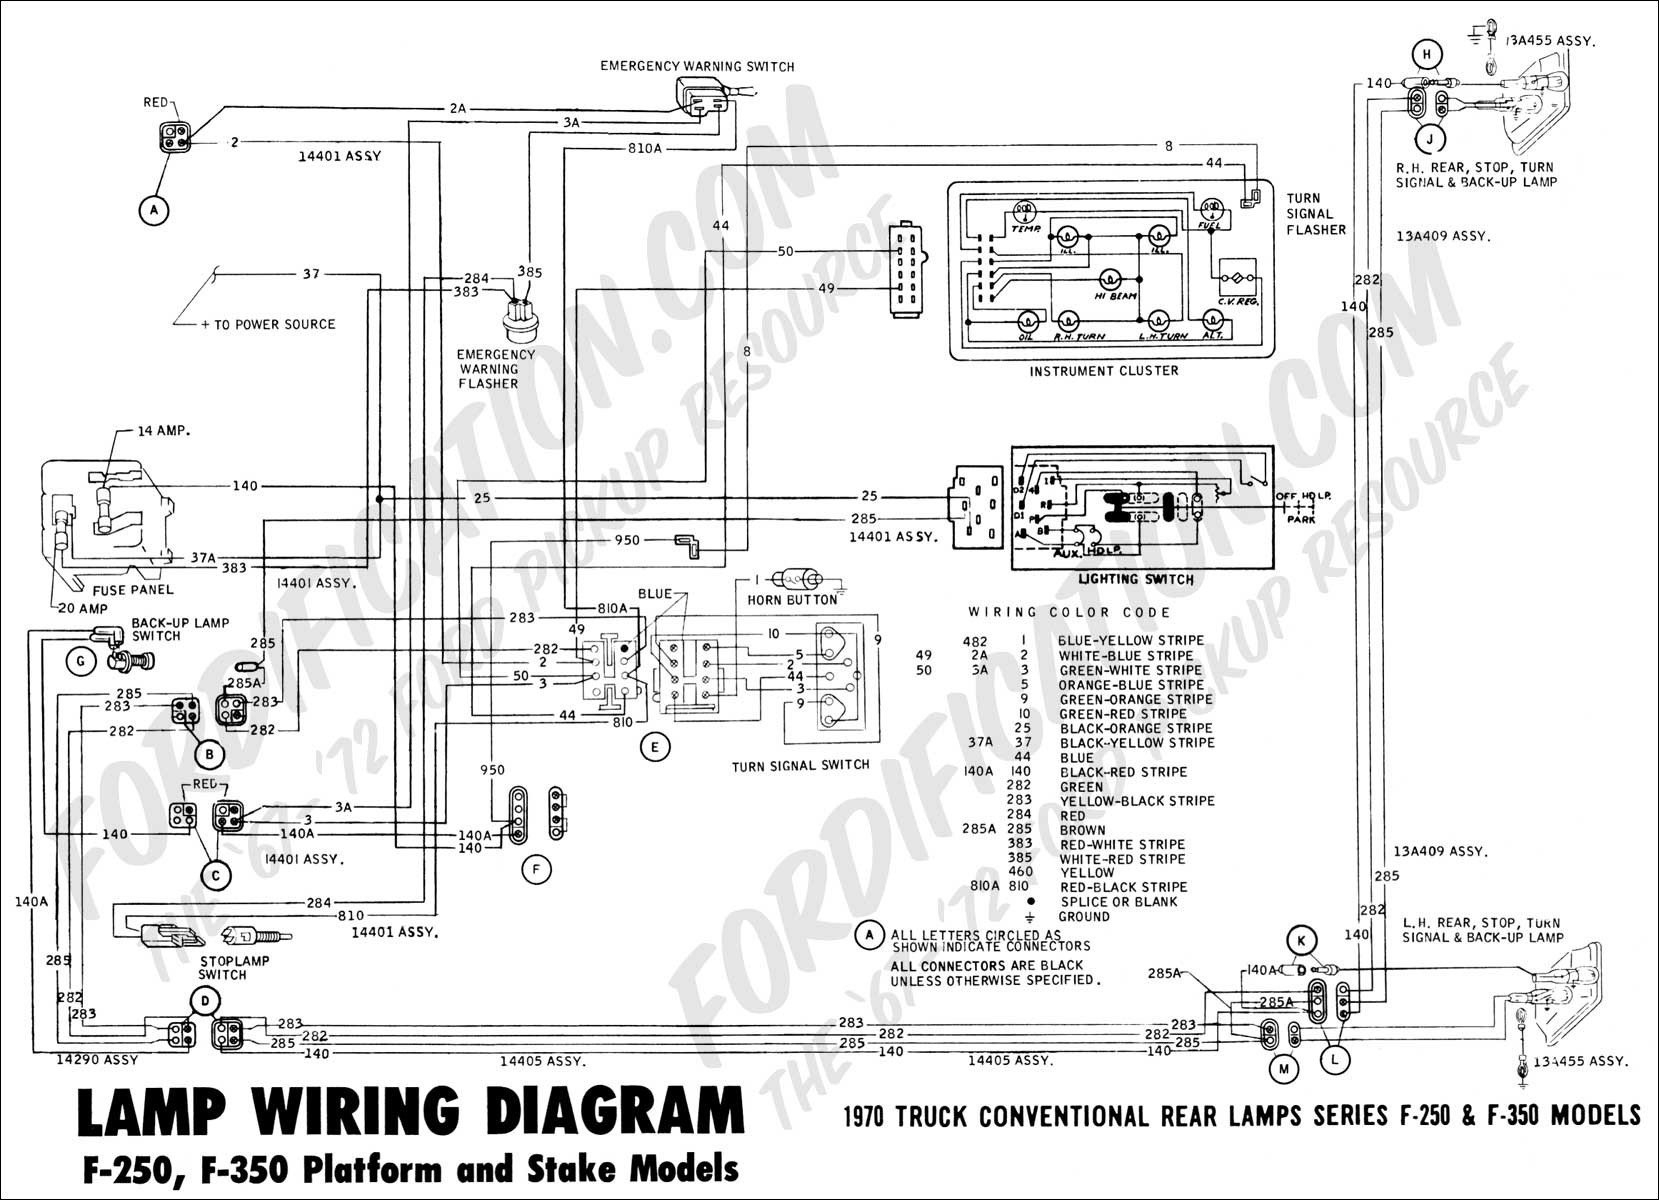 hight resolution of tail light wiring diagram ford f150 gallery 1980 f150 tail light wiring diagram f150 tail light